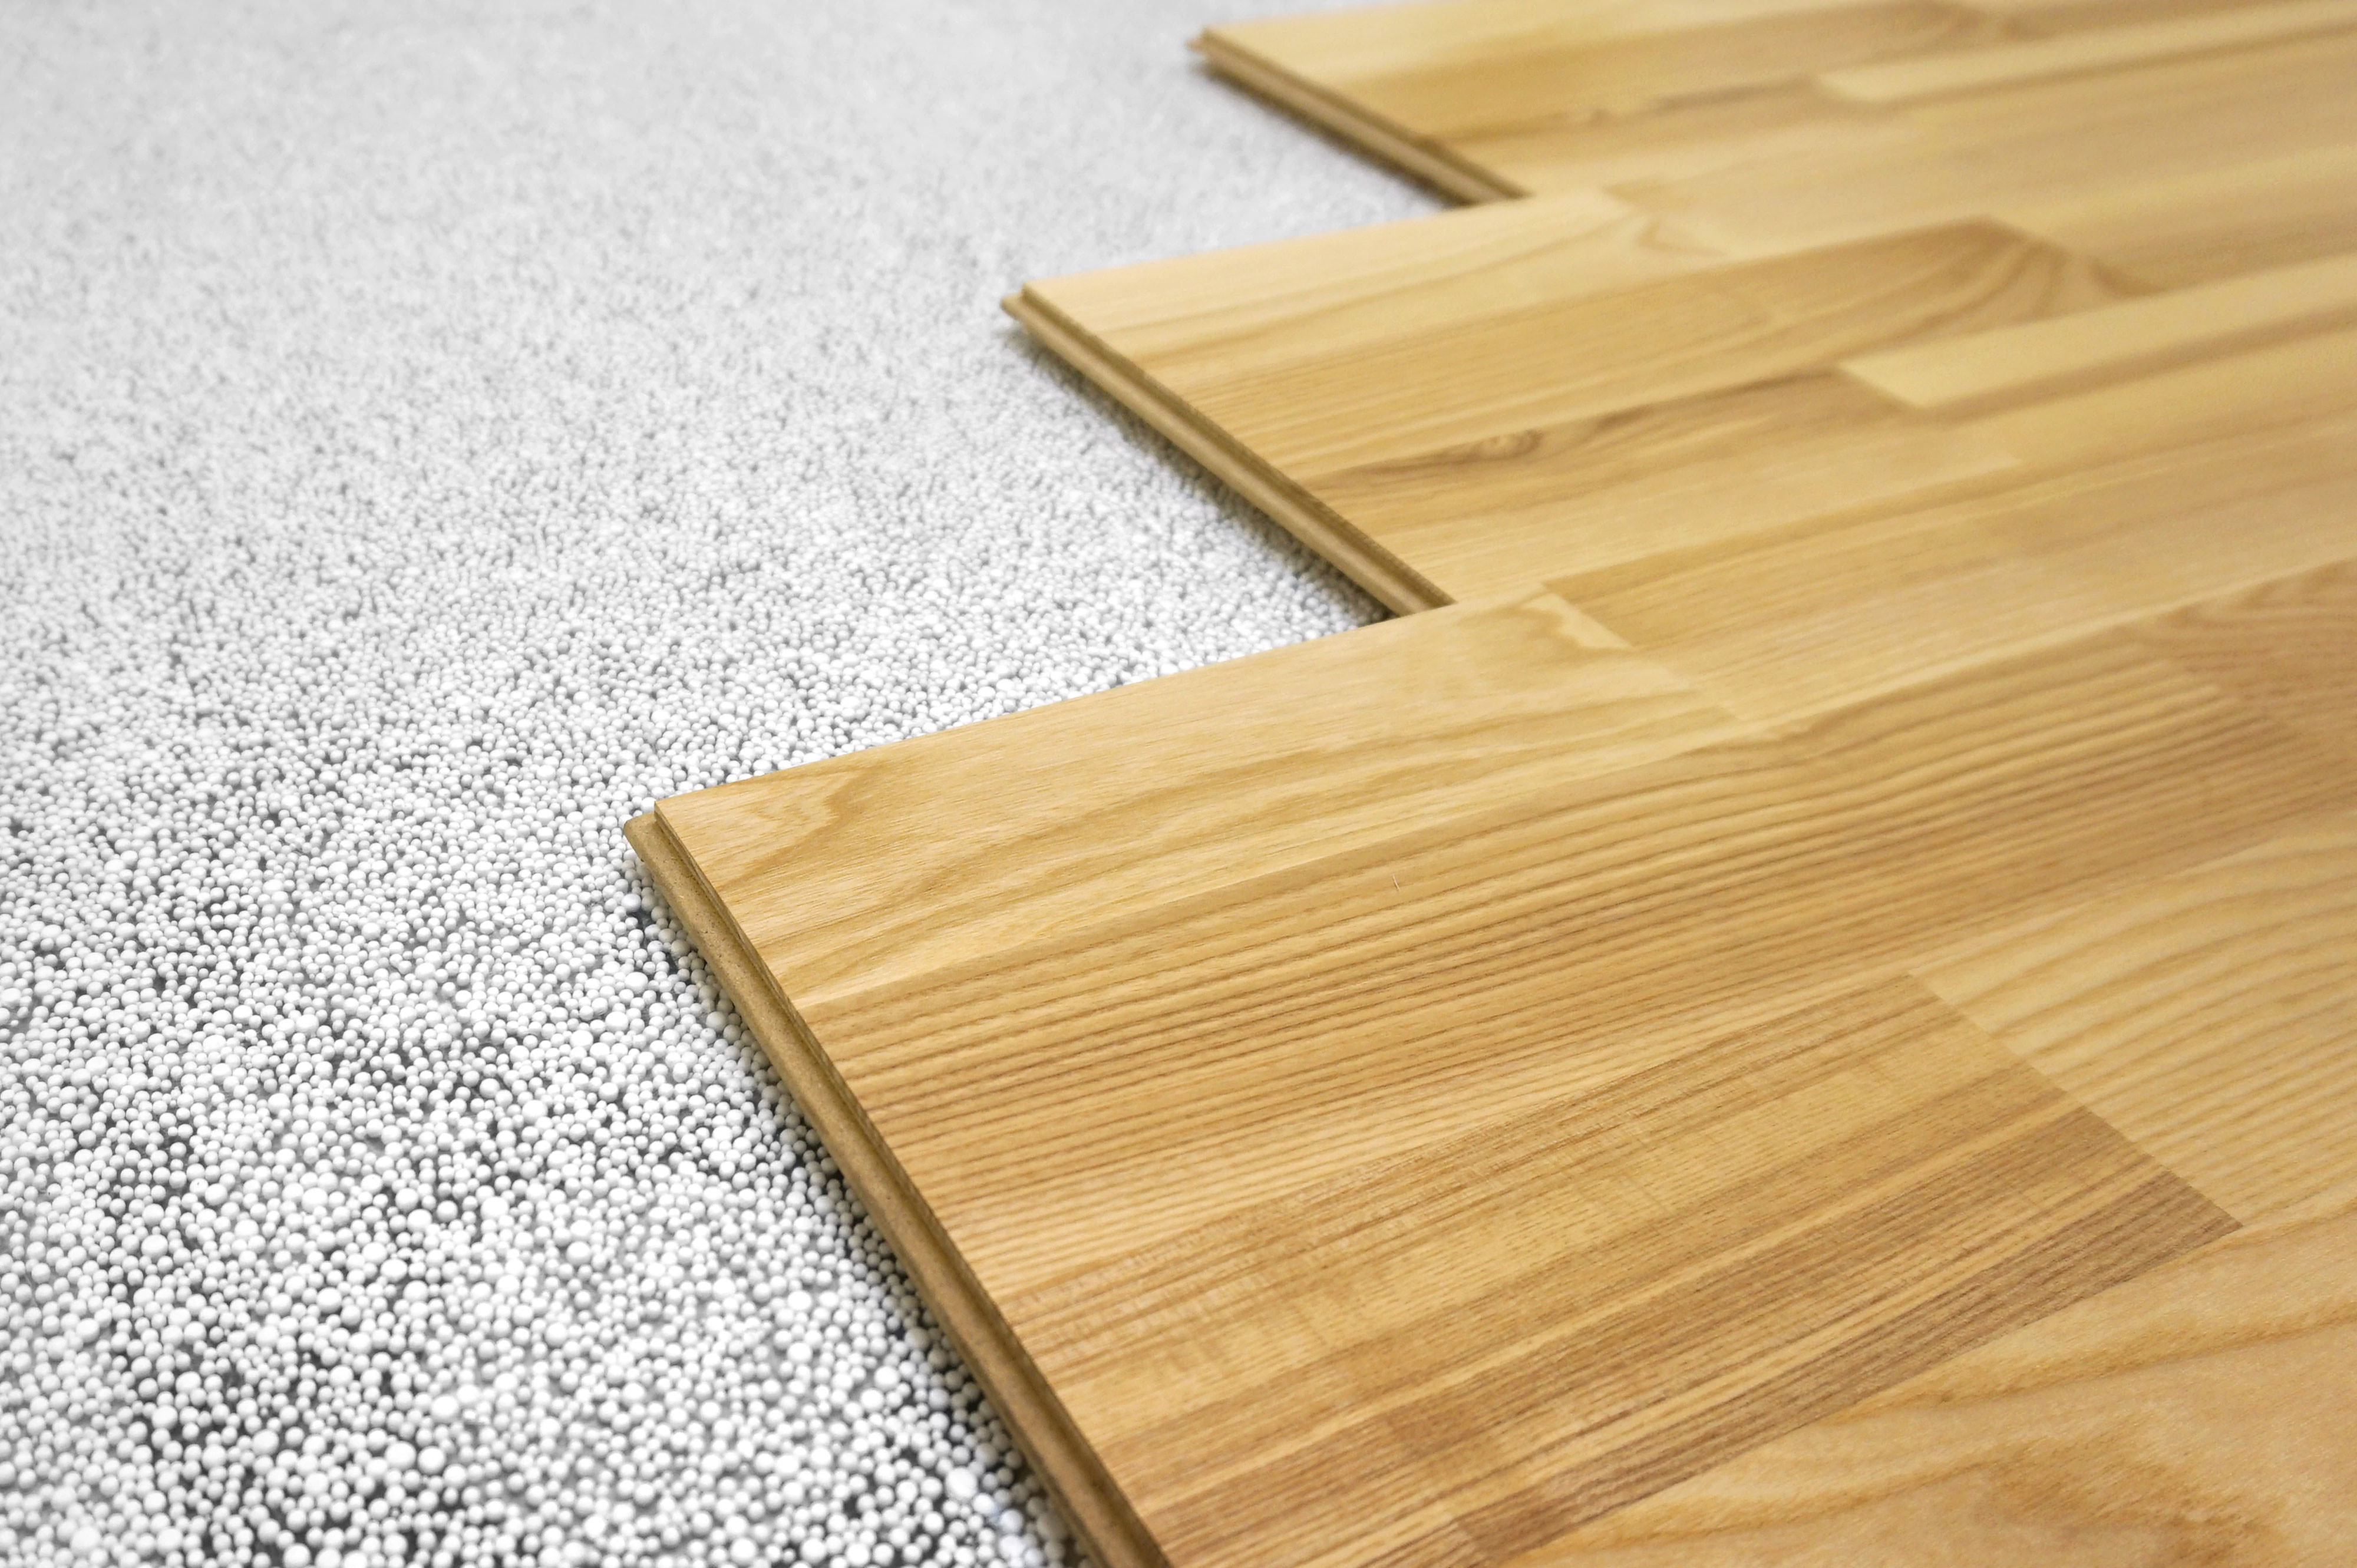 how to clean vinyl hardwood floors of what does it cost to install laminate flooring angies list pertaining to wood lam